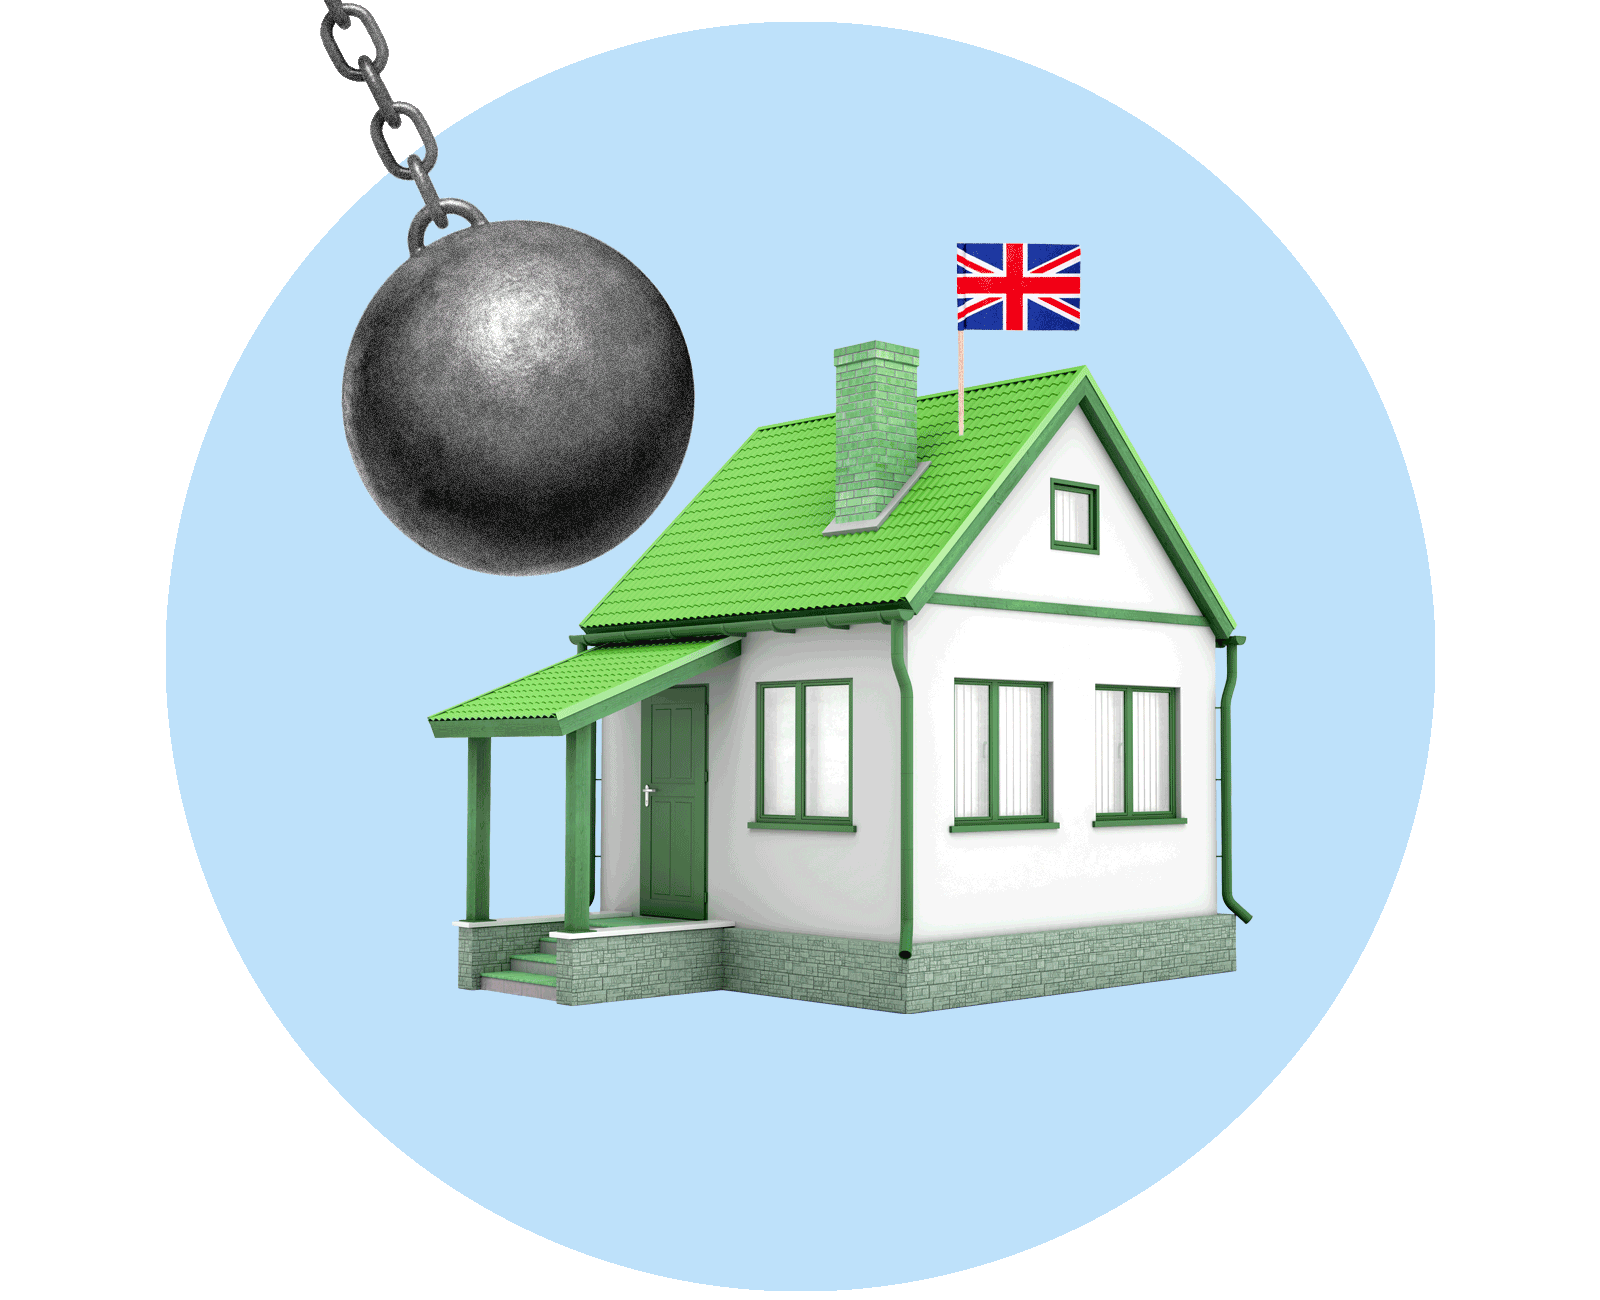 A wrecking ball swinging towards a green house with a UK flag on the roof